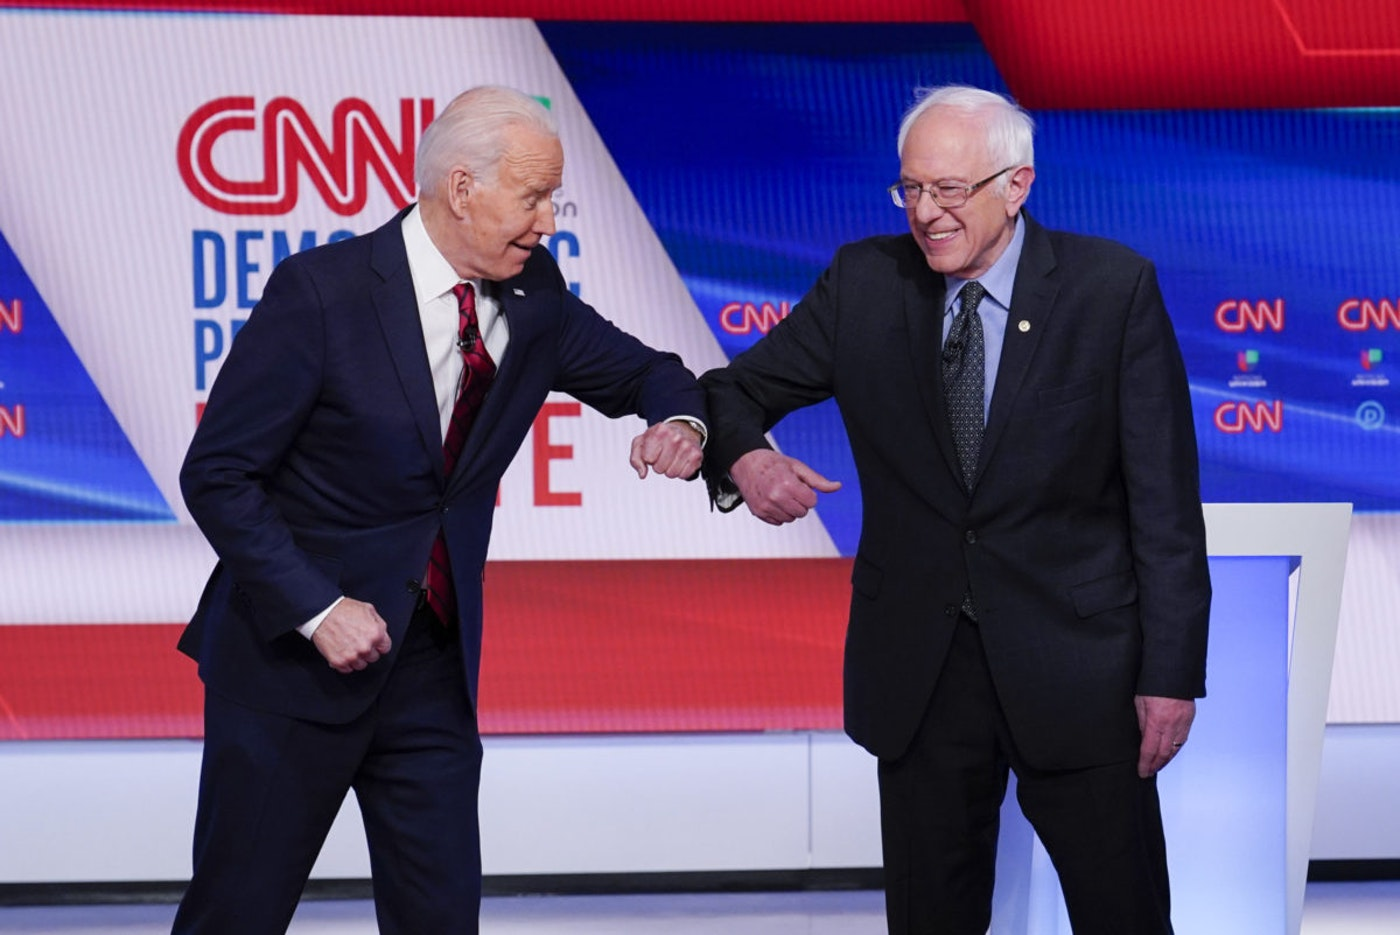 In this March 15, 2020 file photo, now Democratic presidential candidate former Vice President Joe Biden, left, and Sen. Bernie Sanders, D-Vt., right, greet one another before they participate in a Democratic presidential primary debate at CNN Studios in Washington. (AP Photo/Evan Vucci)